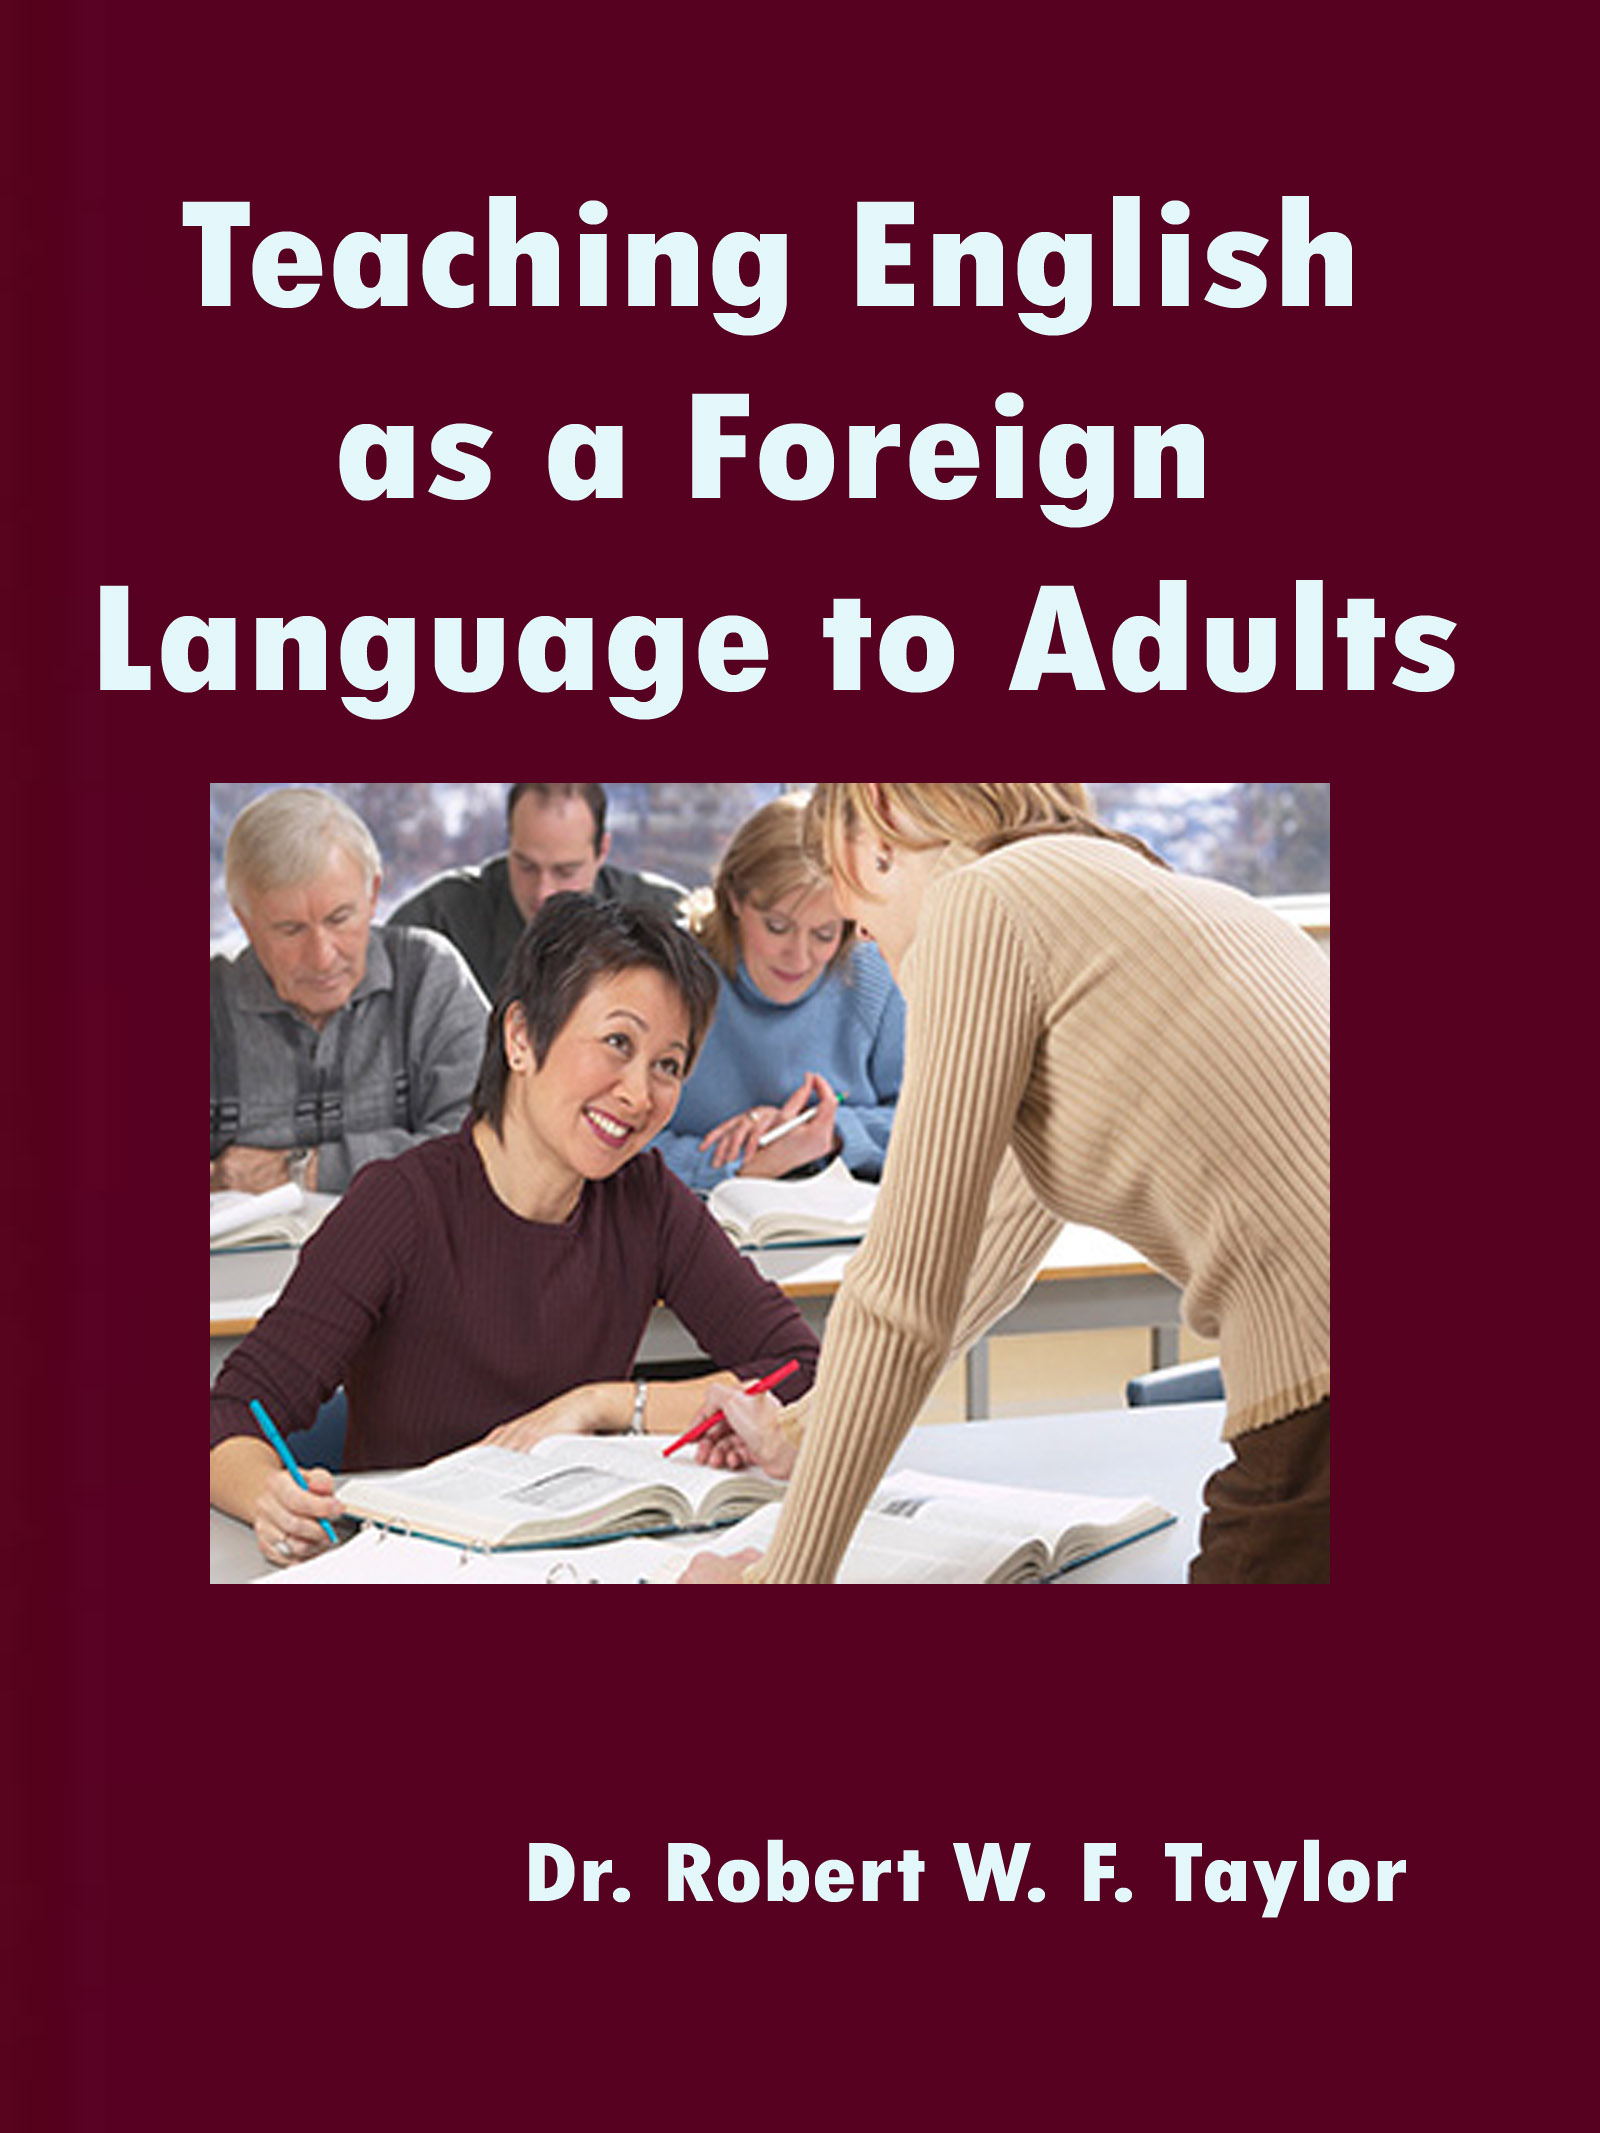 the effect of movie viewing on learning english as a foreign language The potential role of music in second language learning: a review article the effect on second language singing can facilitate foreign language learning.